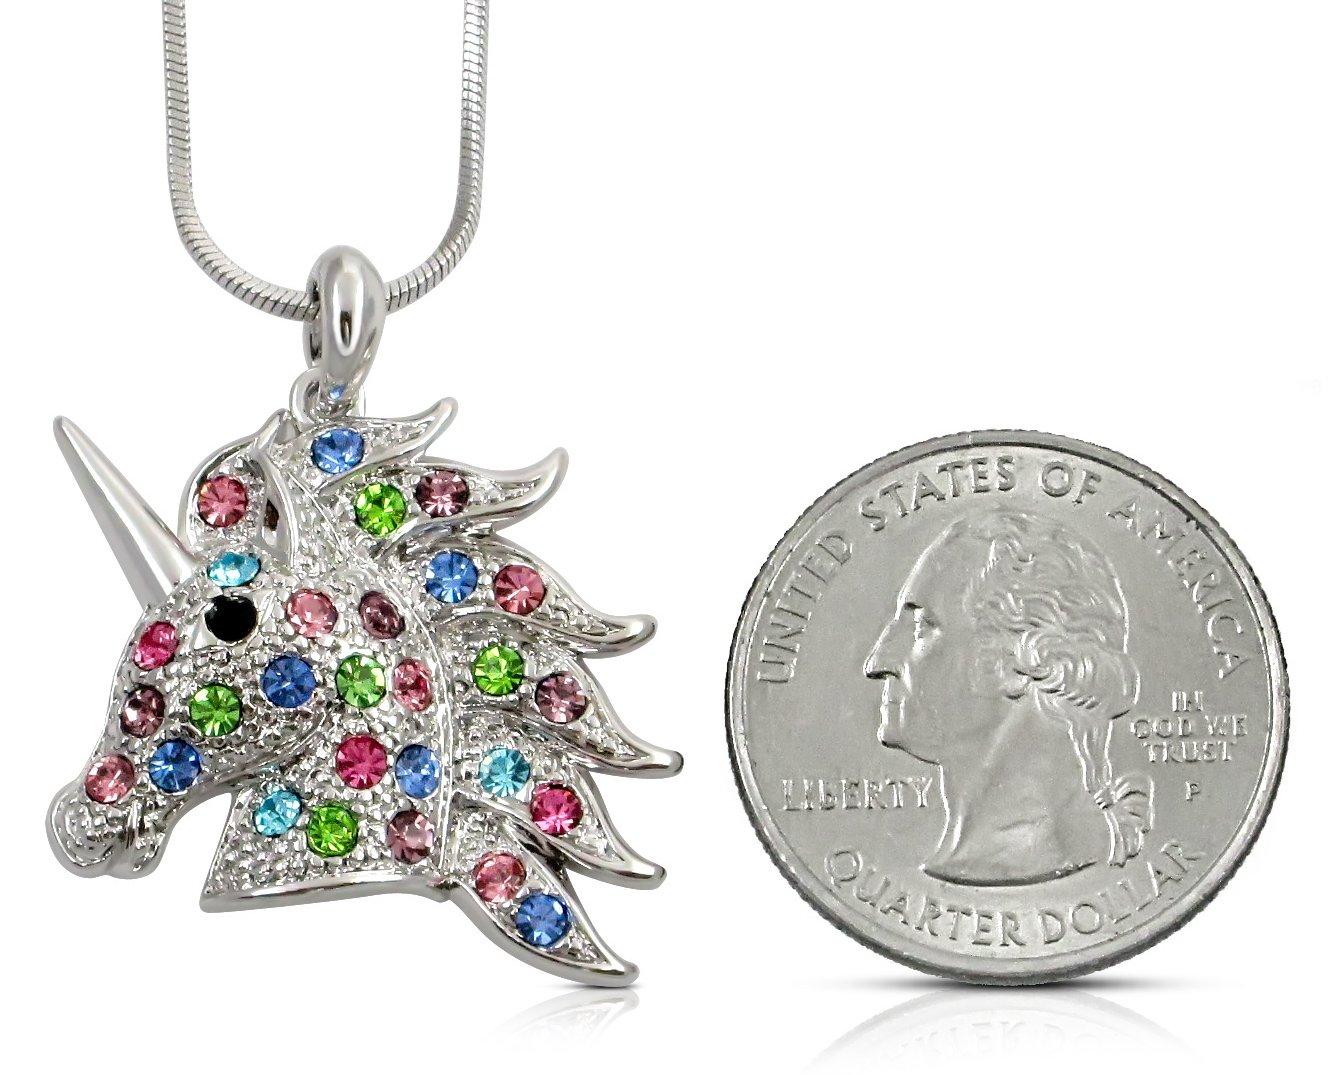 Unicorn Pendant Necklace Jewelry Gift for Girls, Teens, Women, Granddaughters, Sisters, Daughters, Birthday Present (Rainbow) by GLAM (Image #2)